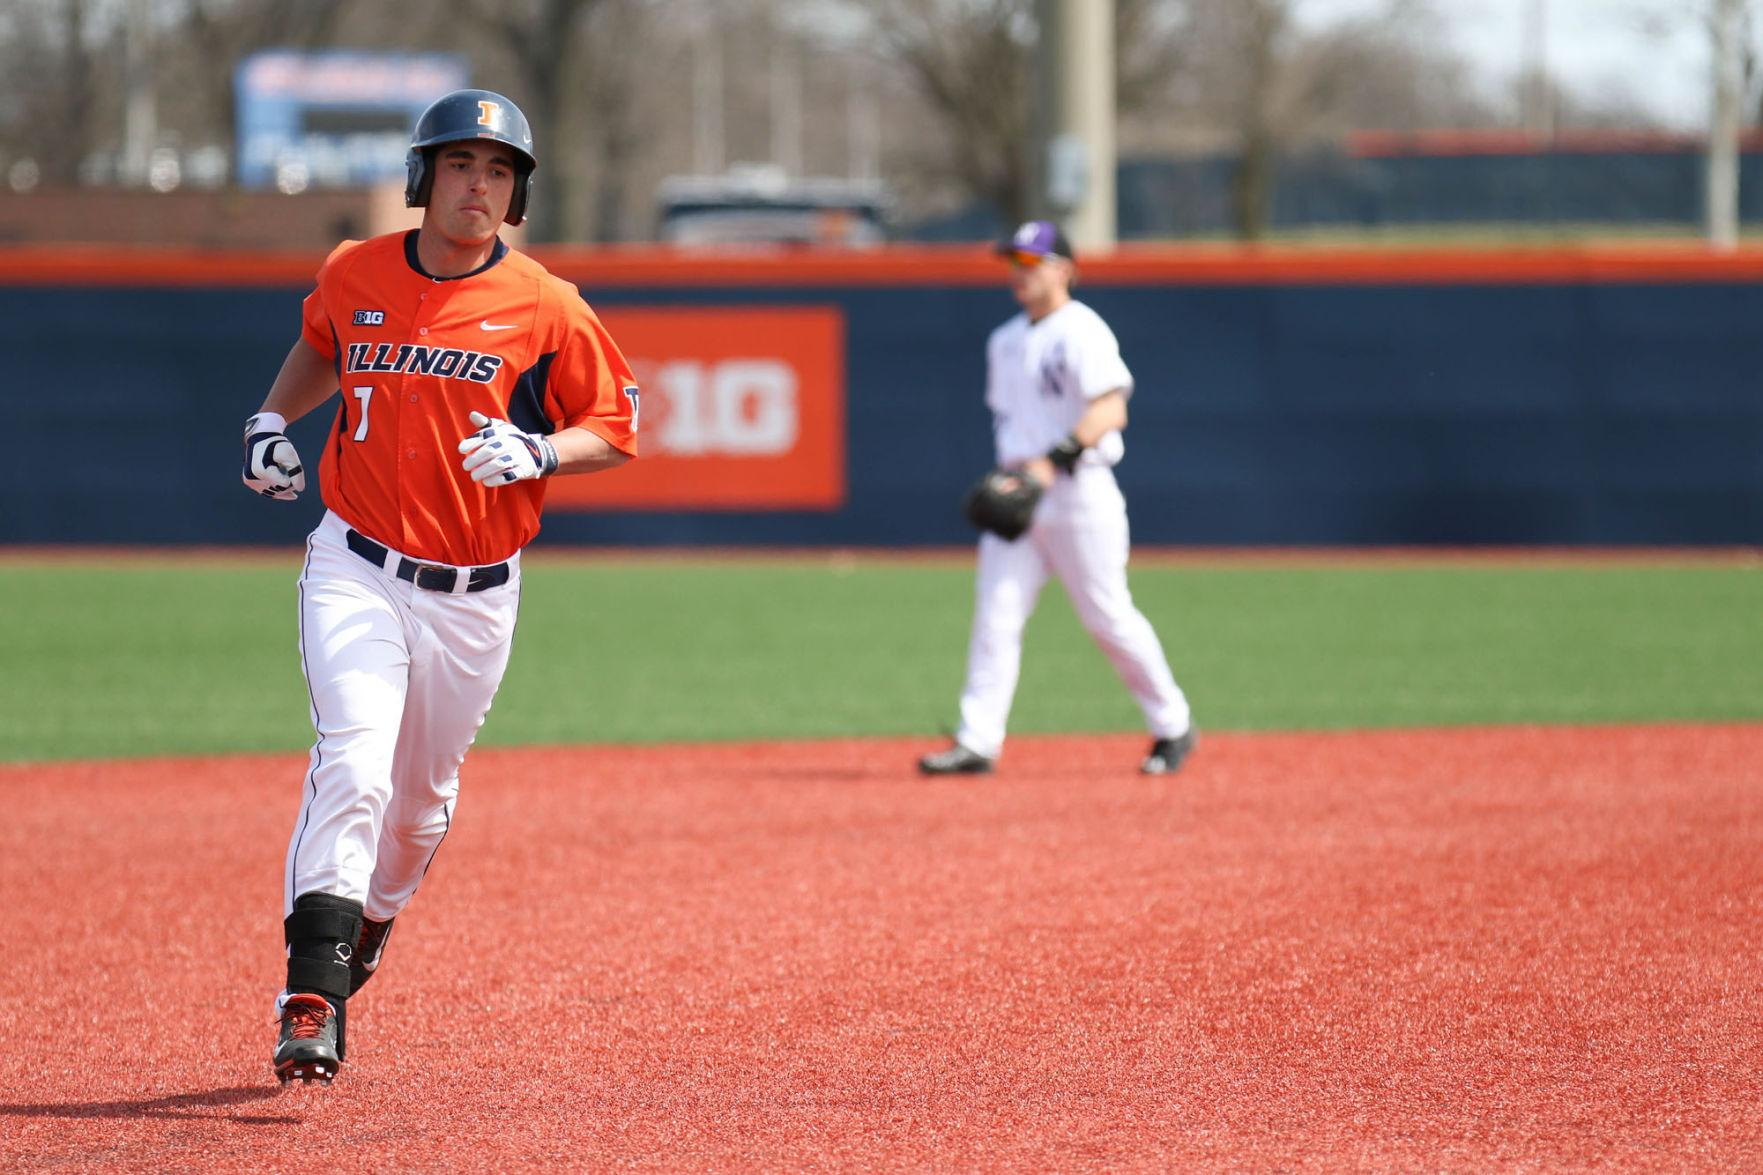 Illinois' Reid Roper runs the bases after hitting a home run during the game against Northwestern at Illinois Field on Sunday. A strong performance at the plate lead to Sunday's 17-12 win and solidified Illinois' series sweep.